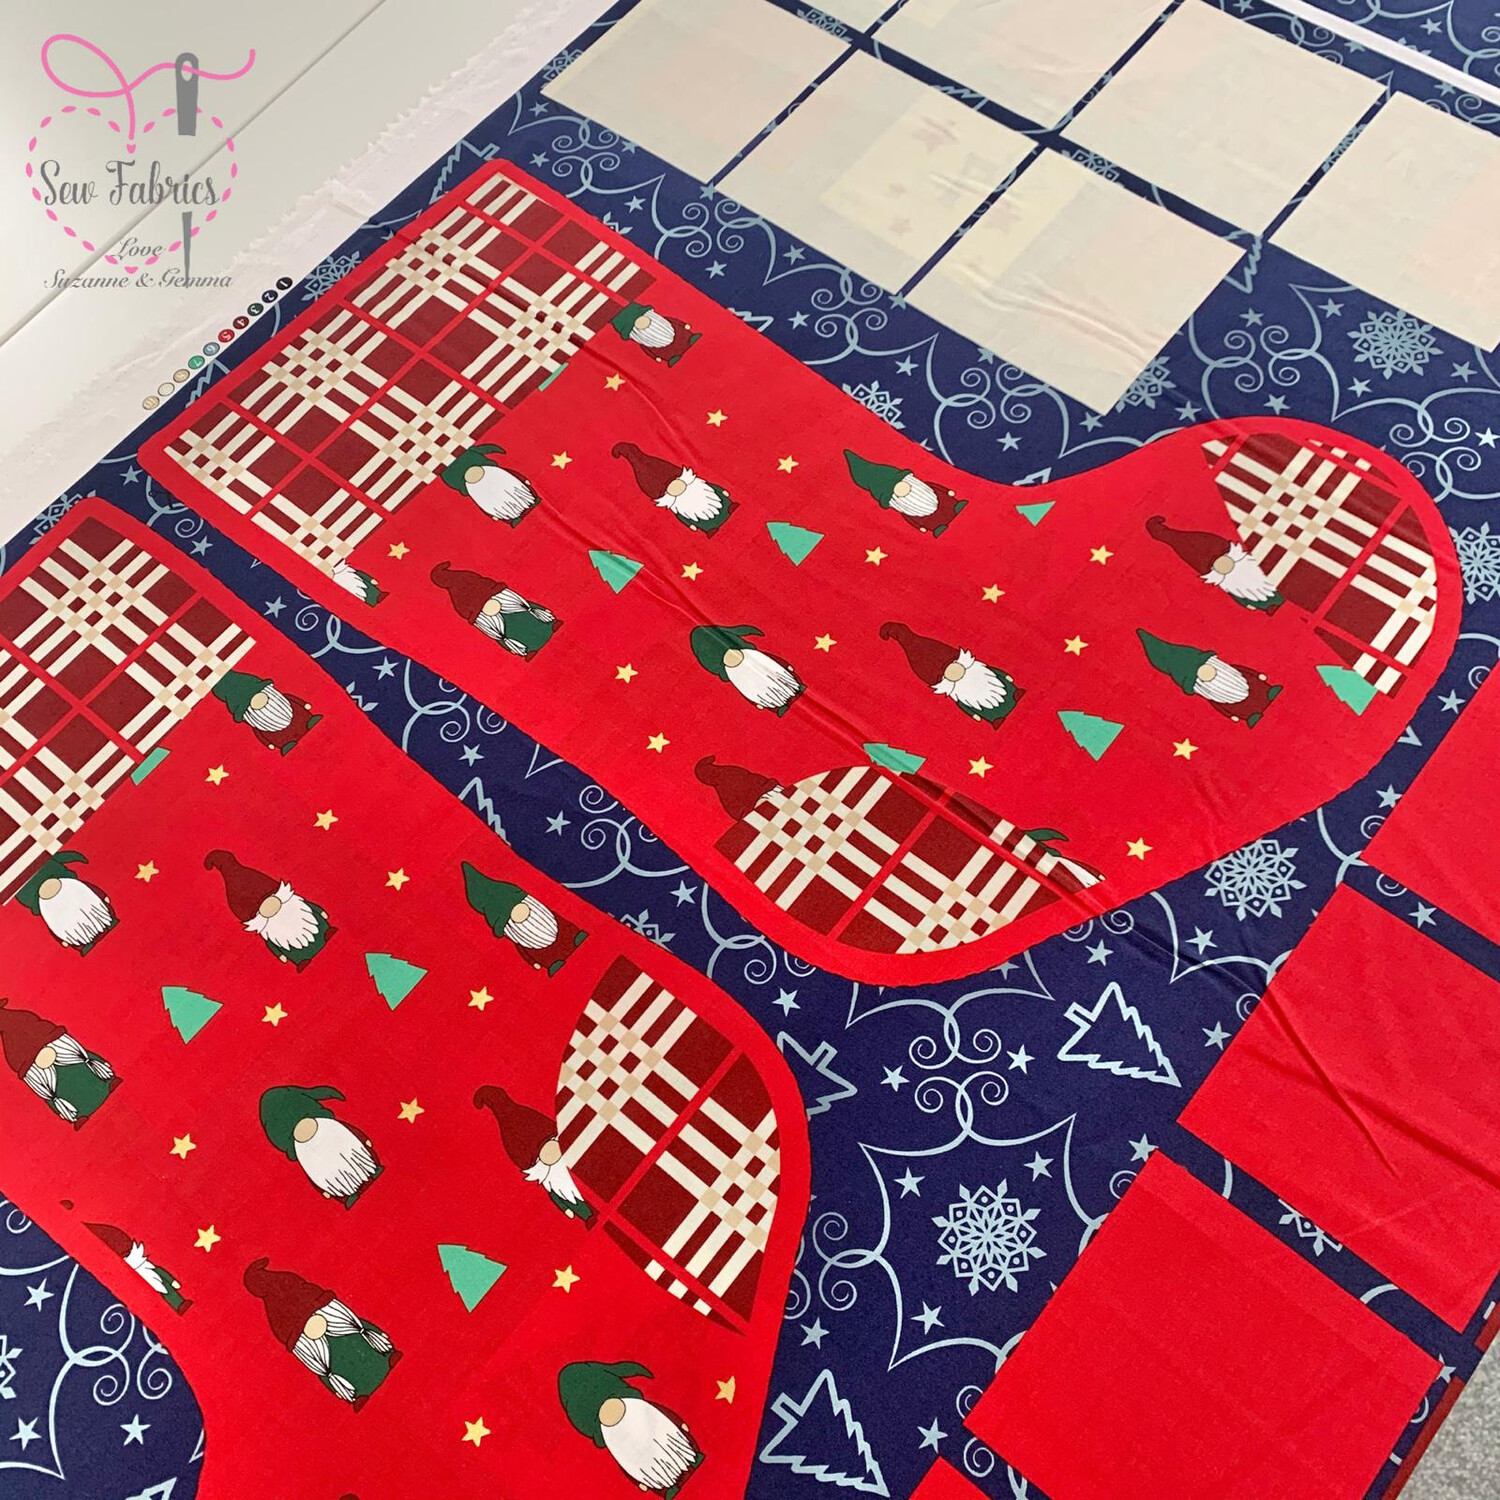 Rose and Hubble Christmas Stocking and Advent Calendar Pockets, 100% Cotton Poplin, Festive Fabric Panel